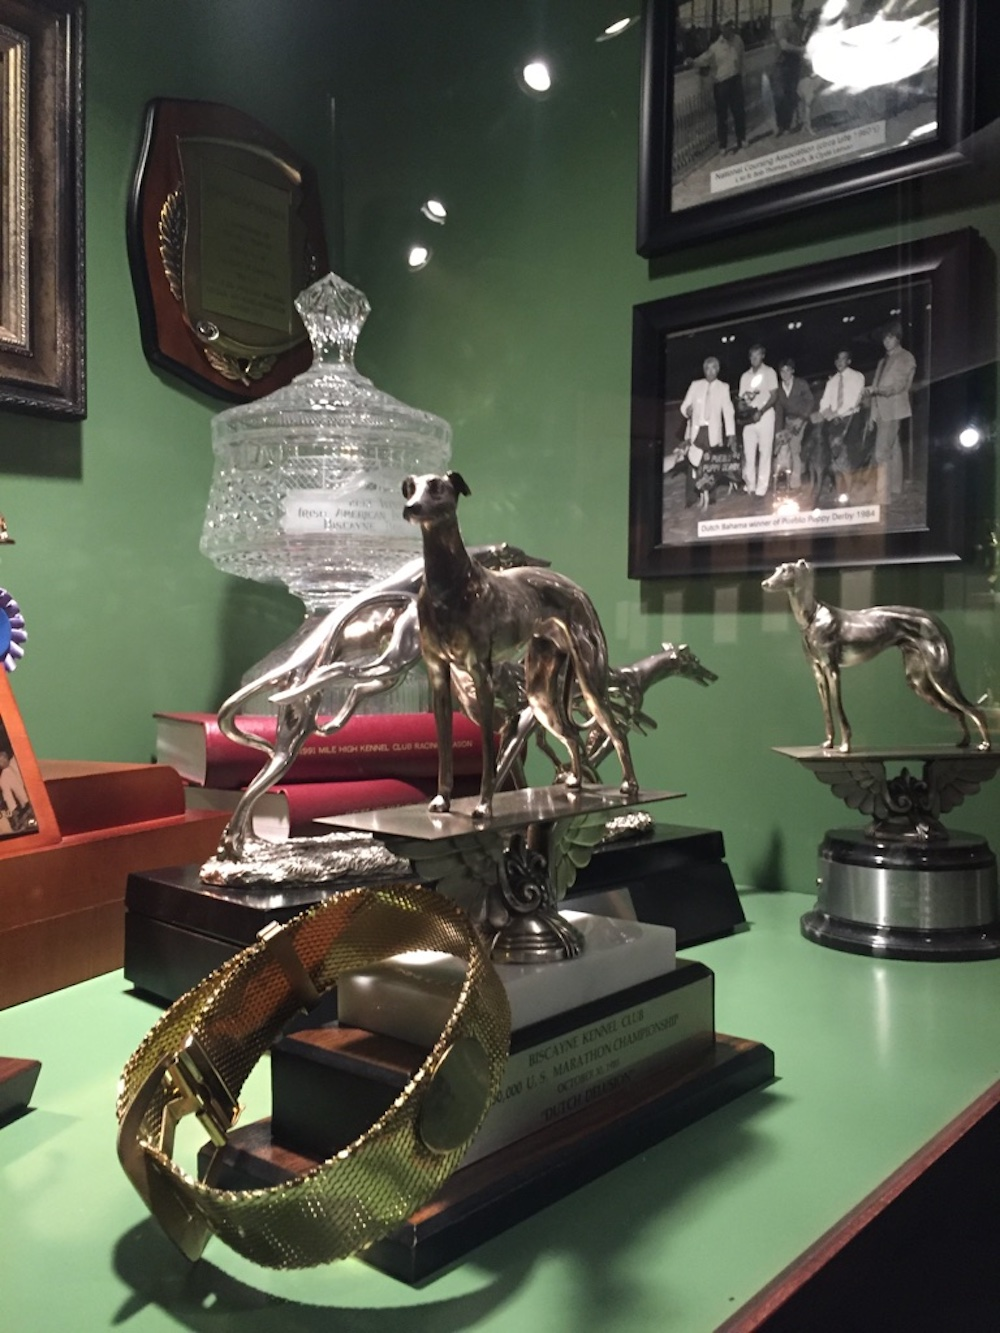 Trophy display case at the Greyhound Hall of Fame in Abilene, Kansas